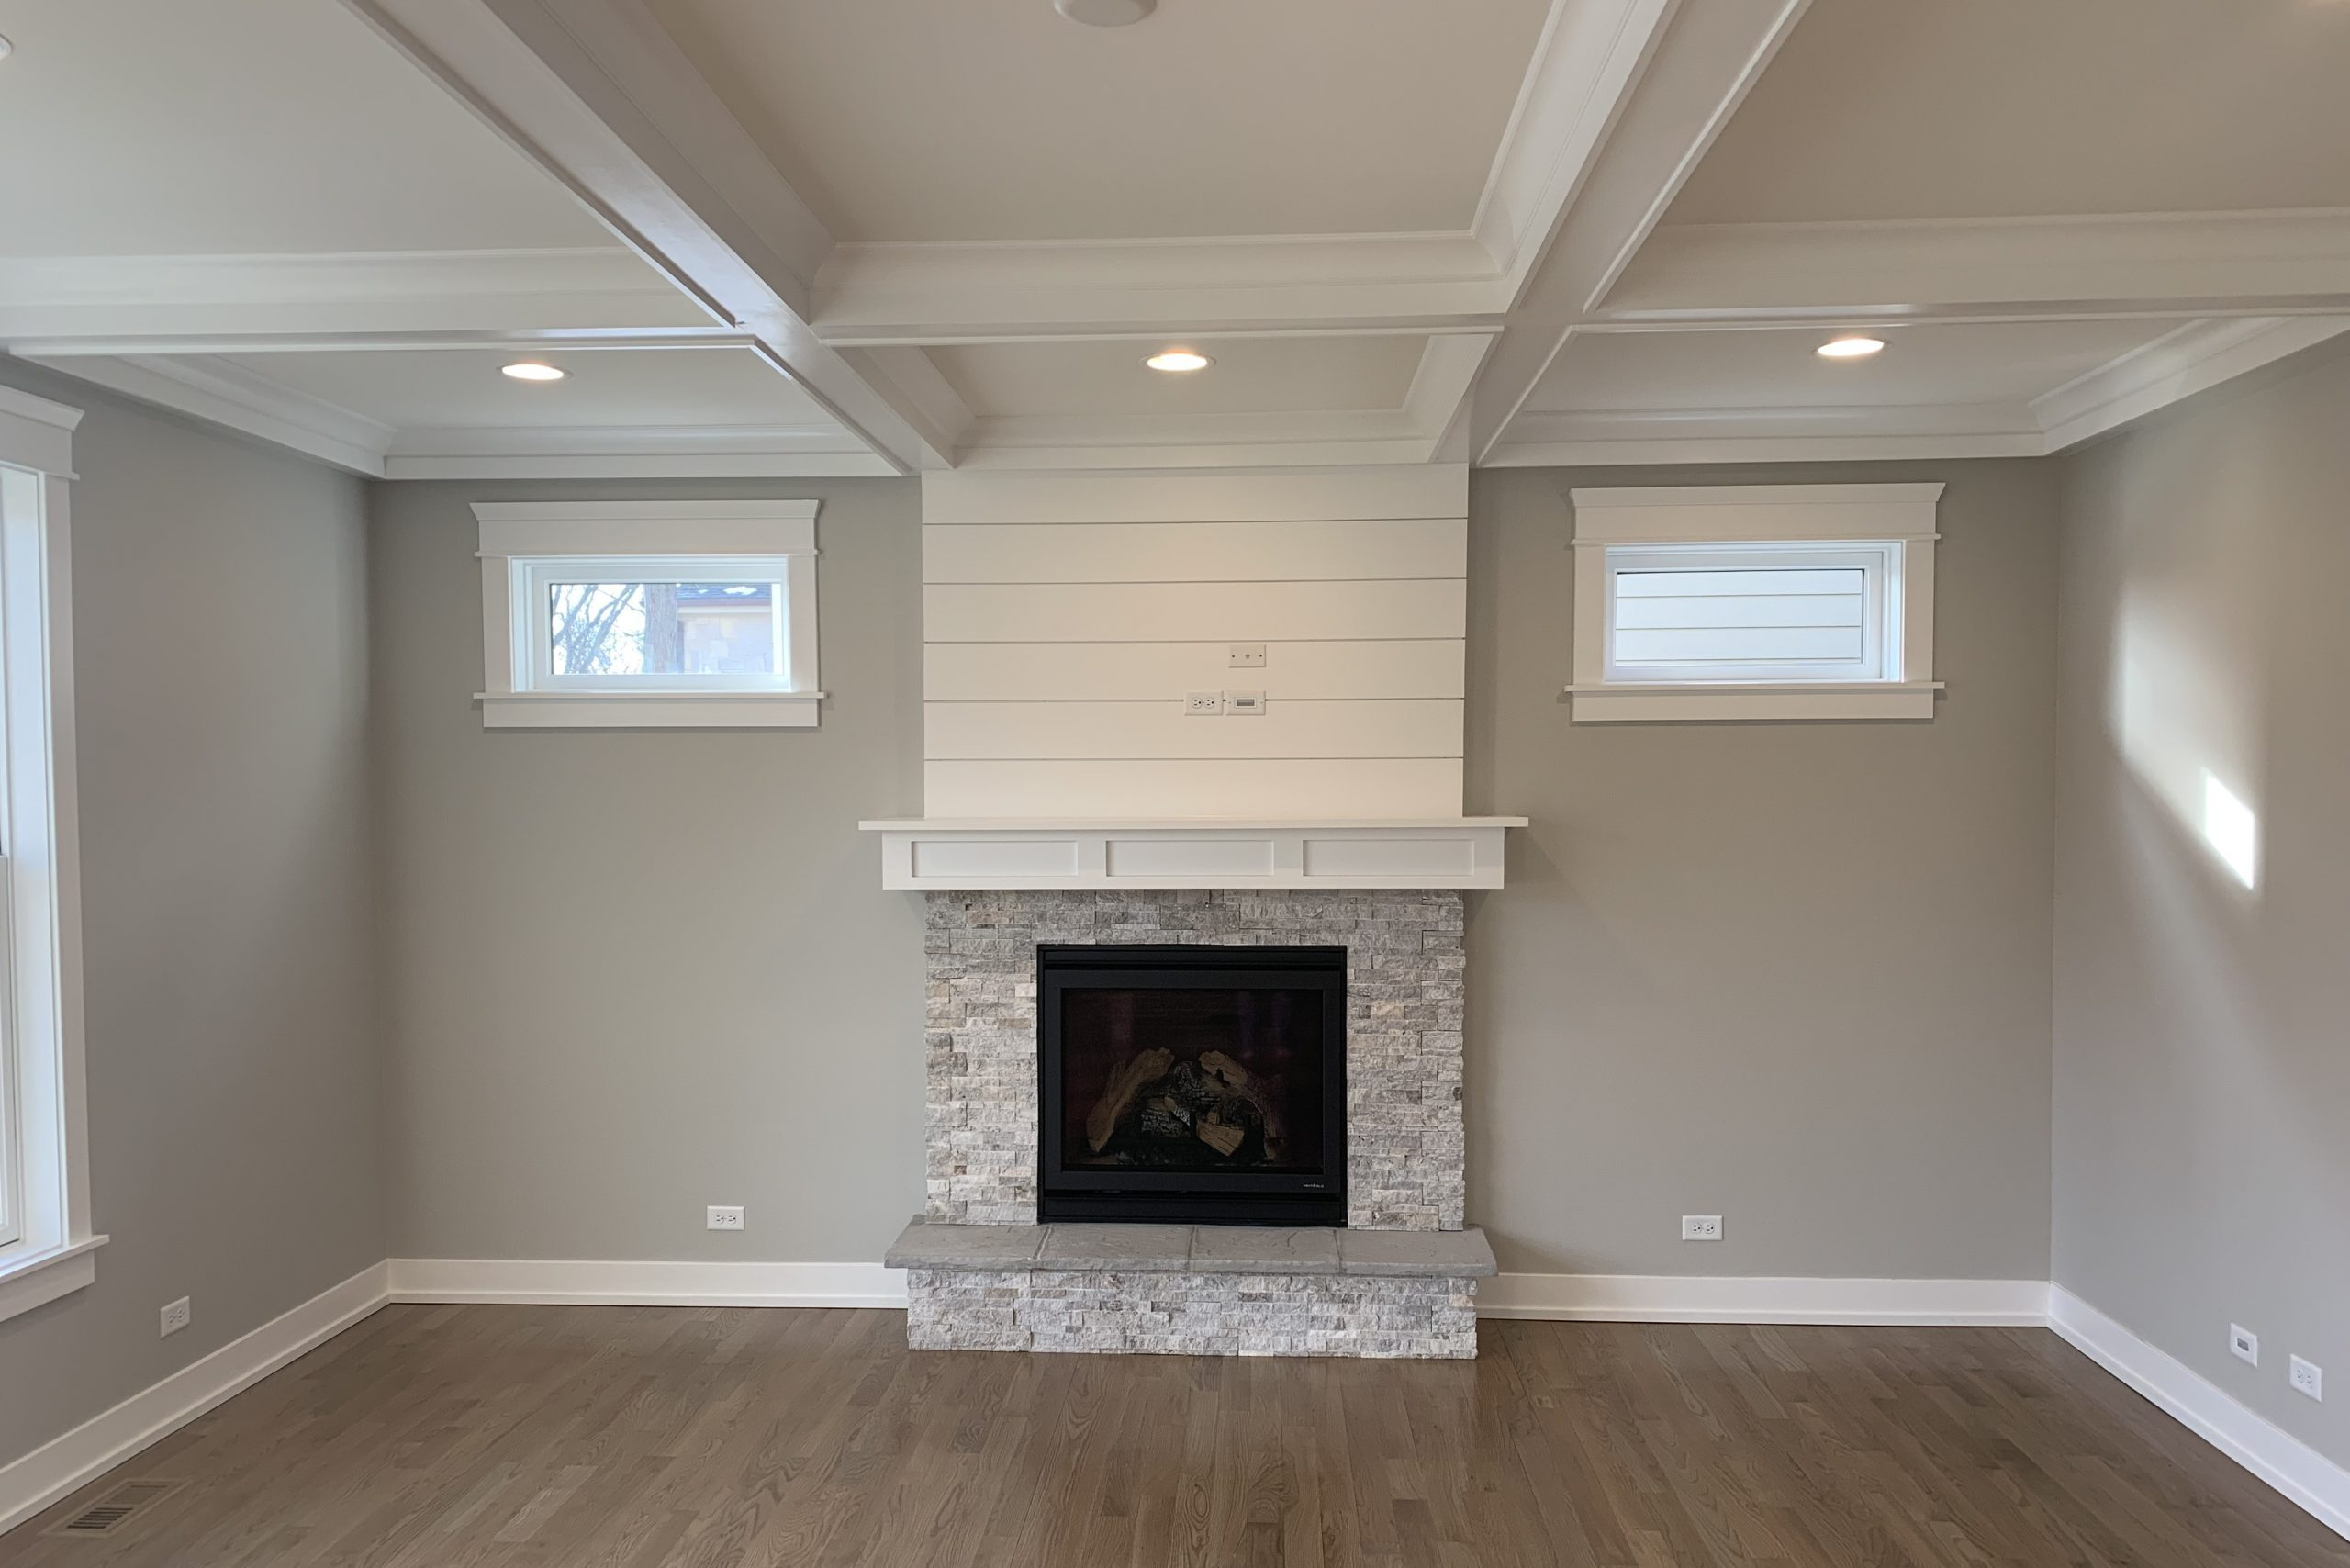 Main Picture Millwork Upgrades